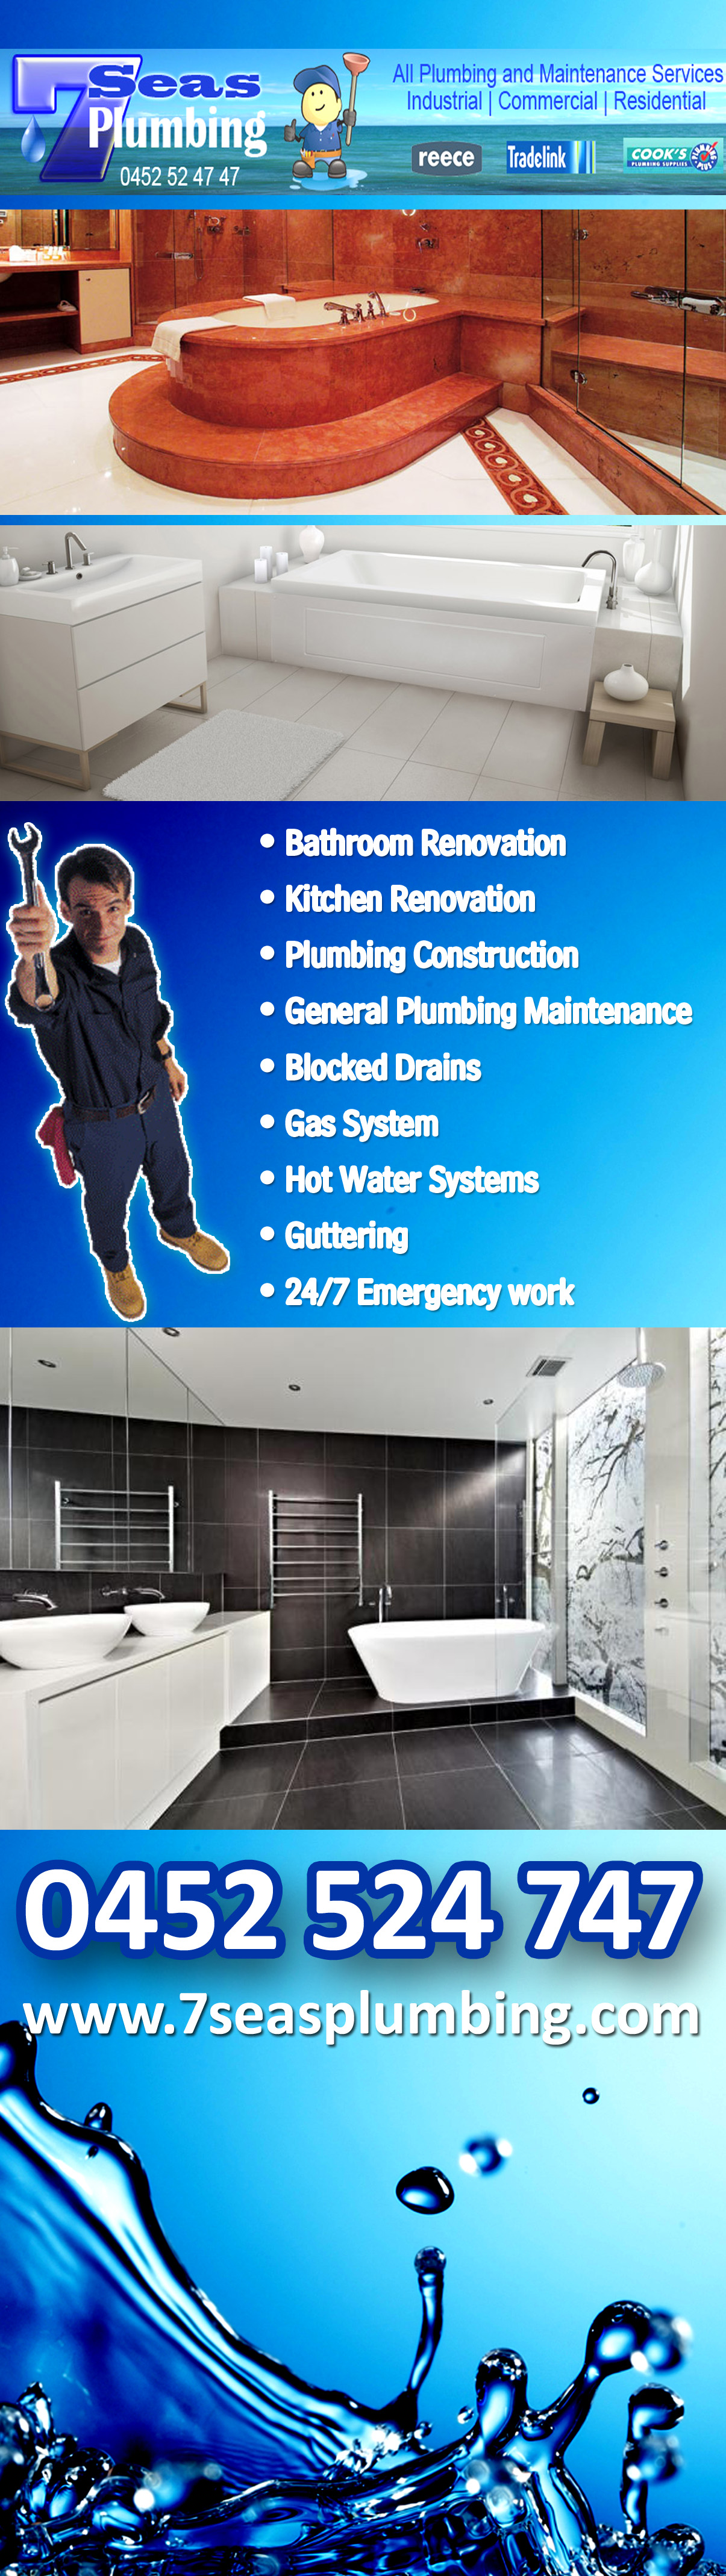 7 Seas Bathroom Renovation Plumbing Services